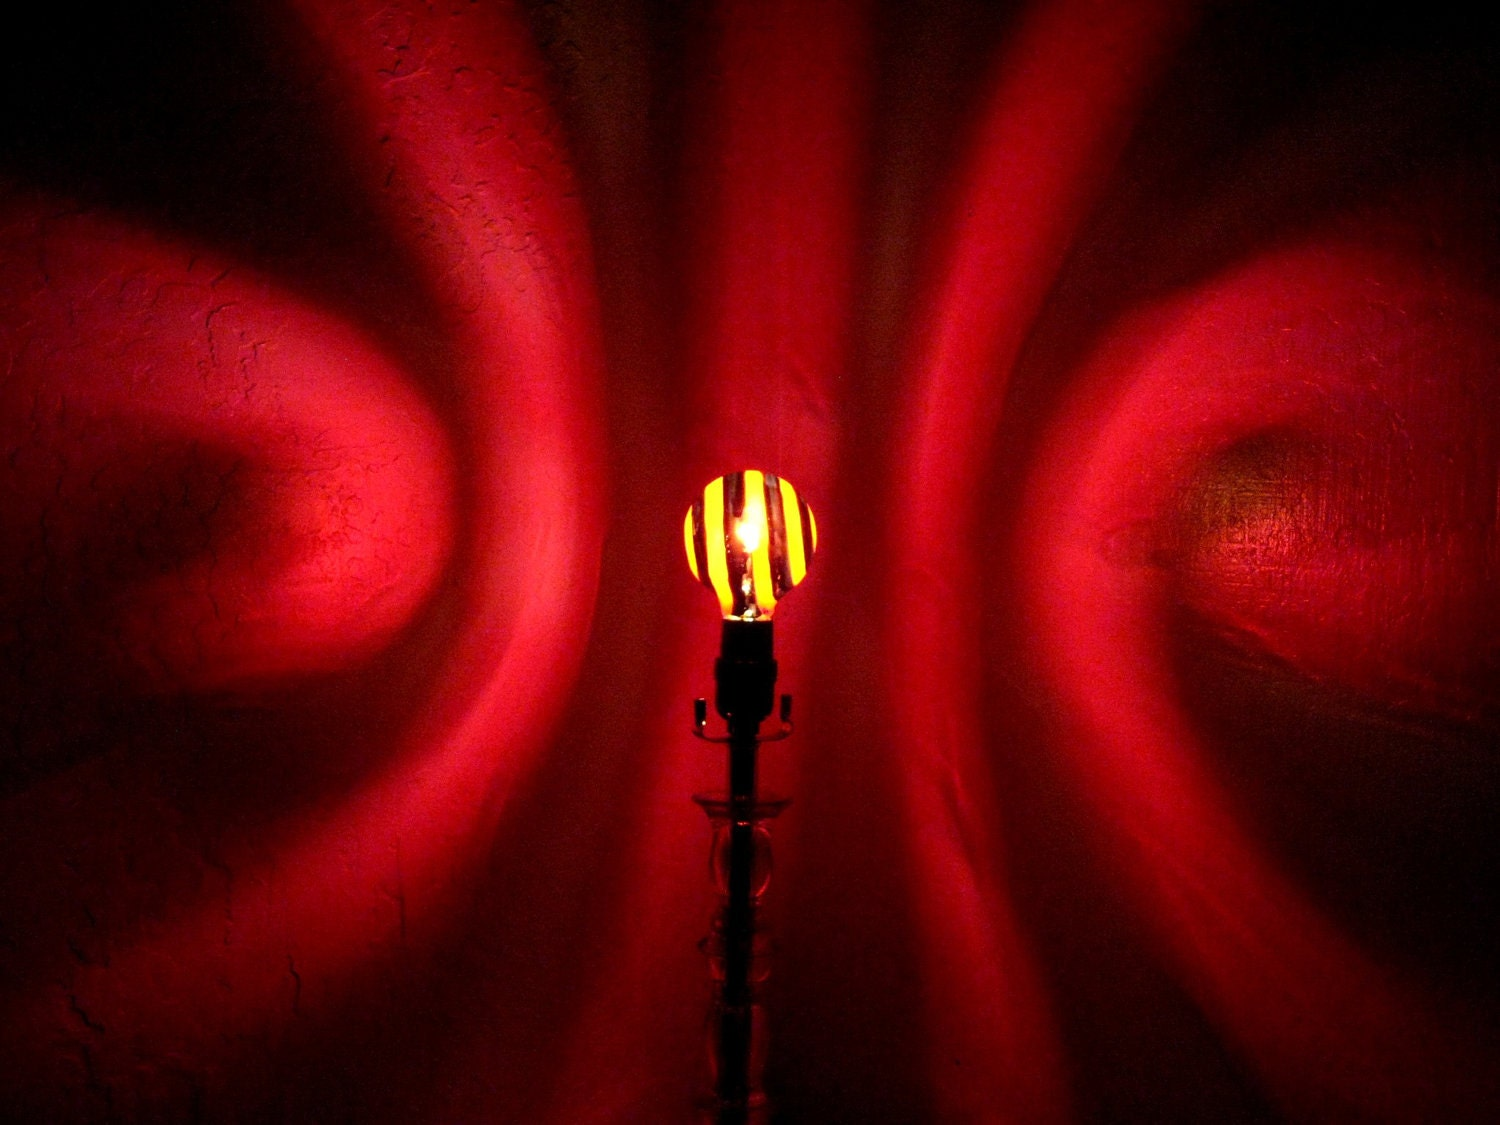 hand painted red spiral mood light bulb 4 night by moodlights